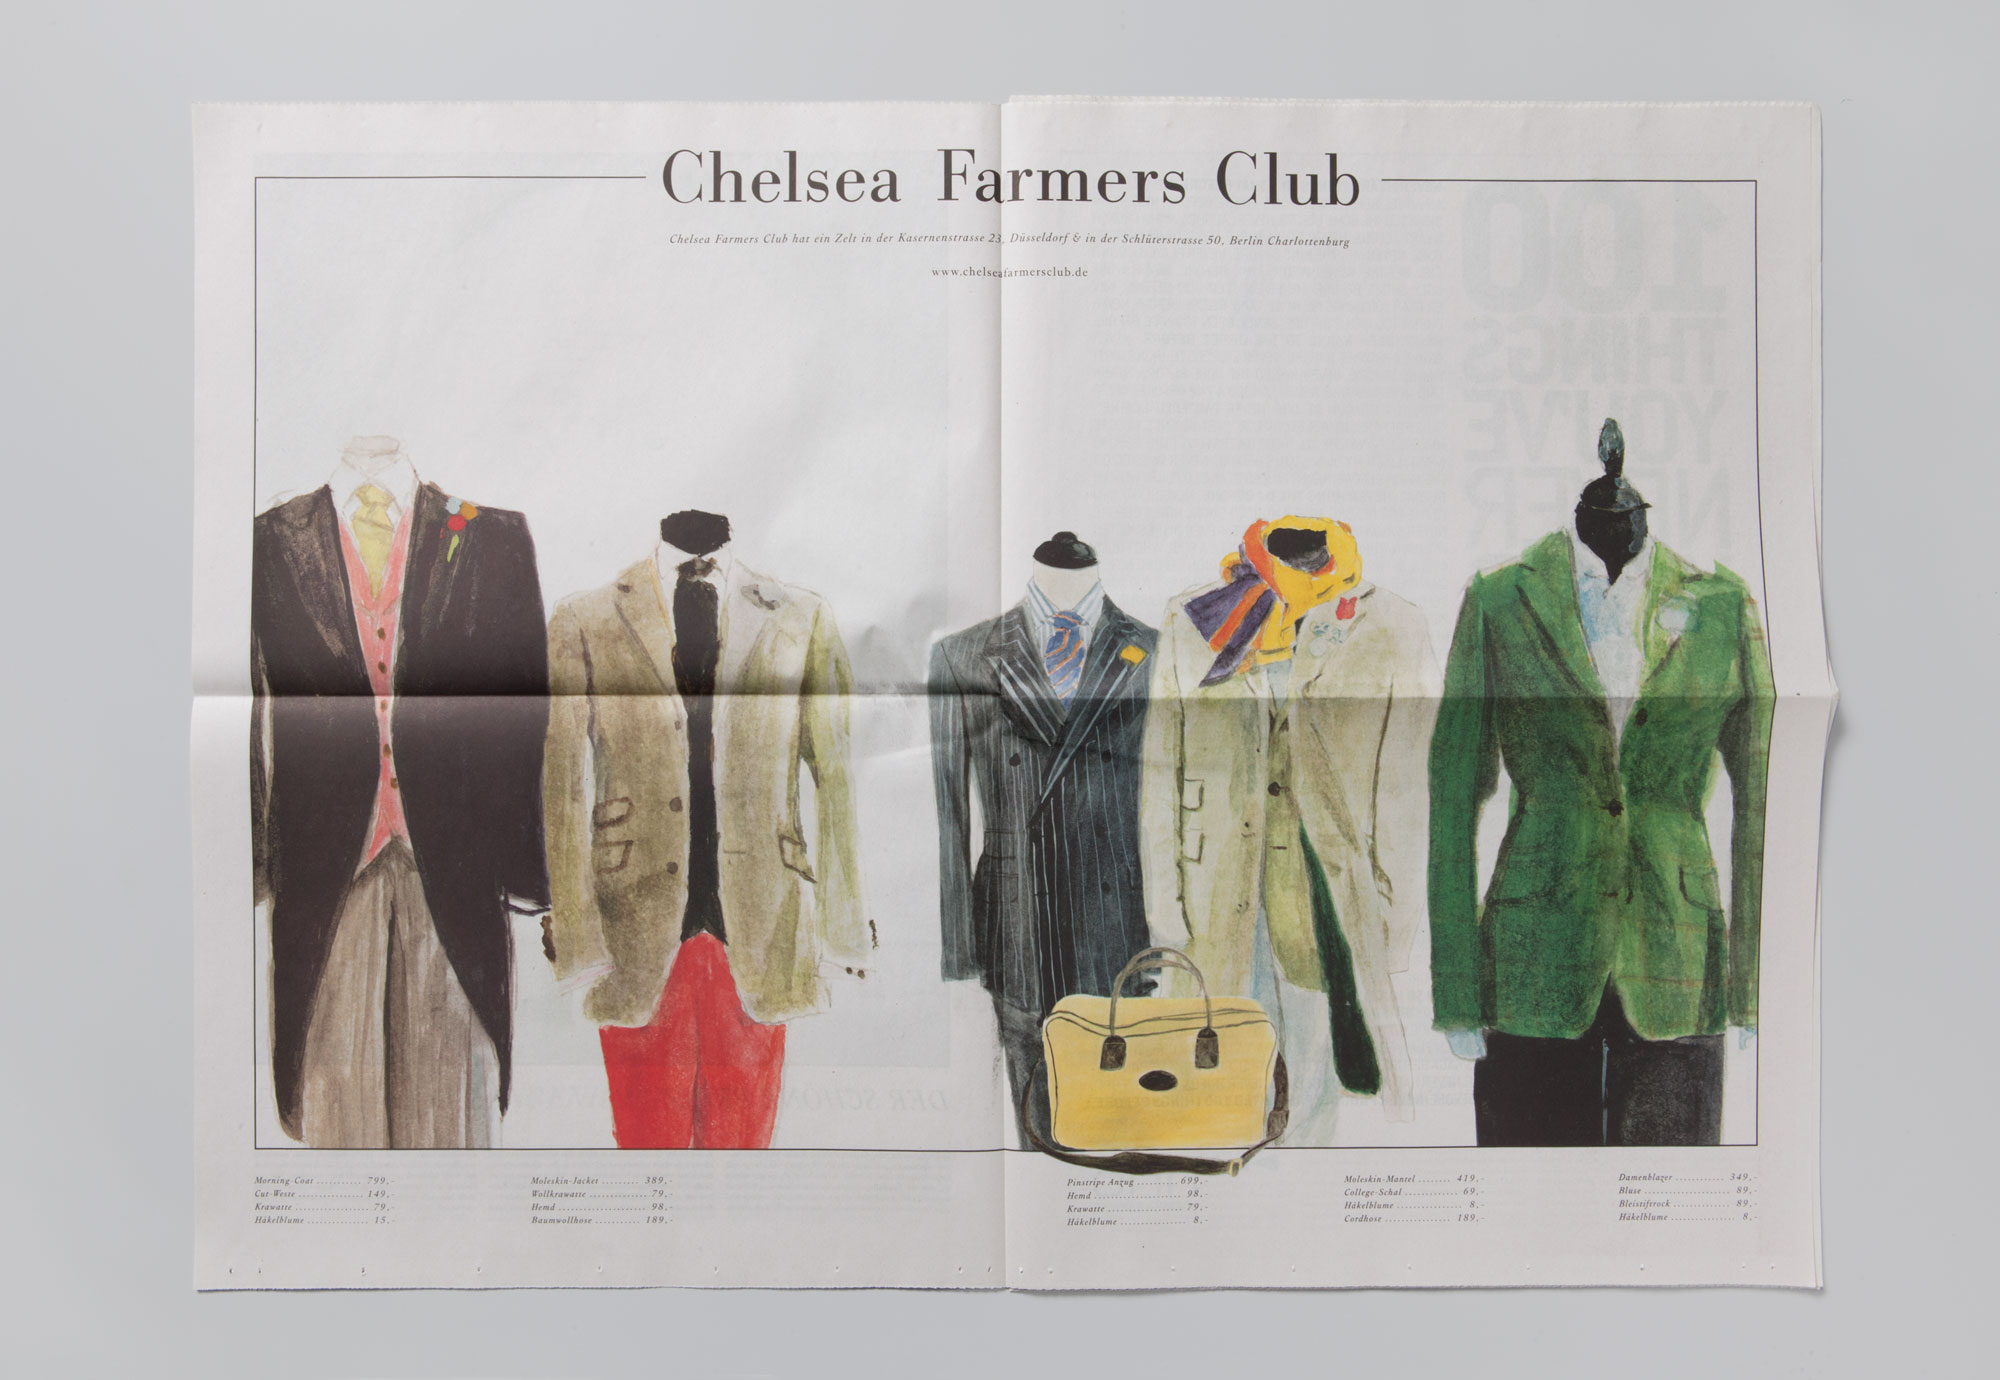 Chelsea Farmers Club. Who's really who. And what really matters.  A collection of really fine people.